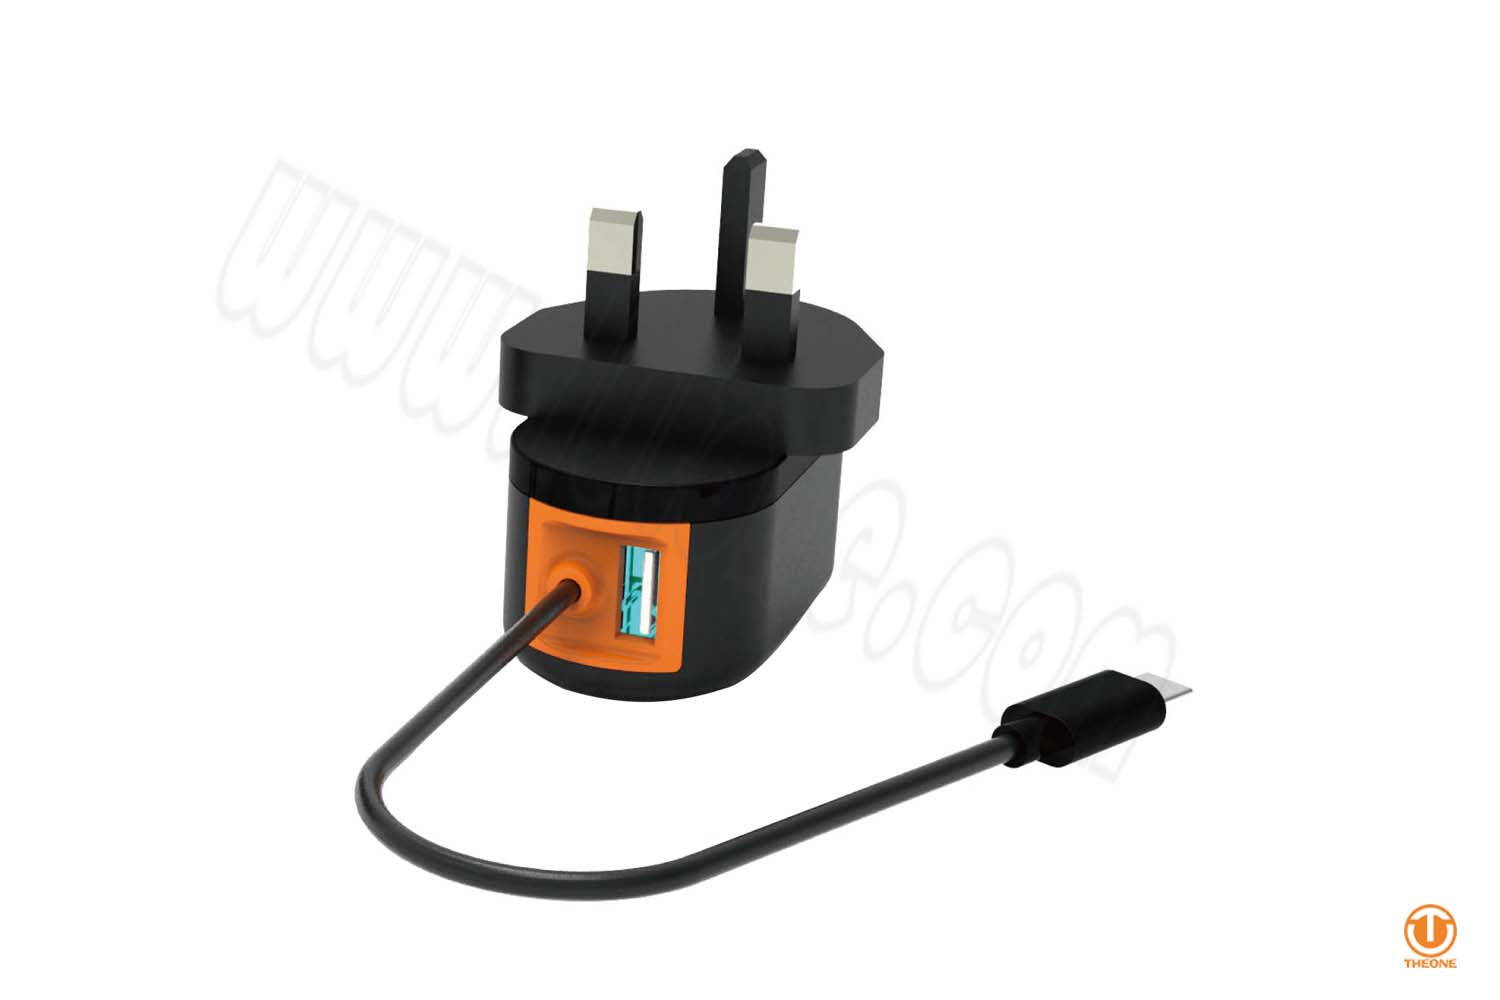 tw01a9-1 wire charger with extra usb port